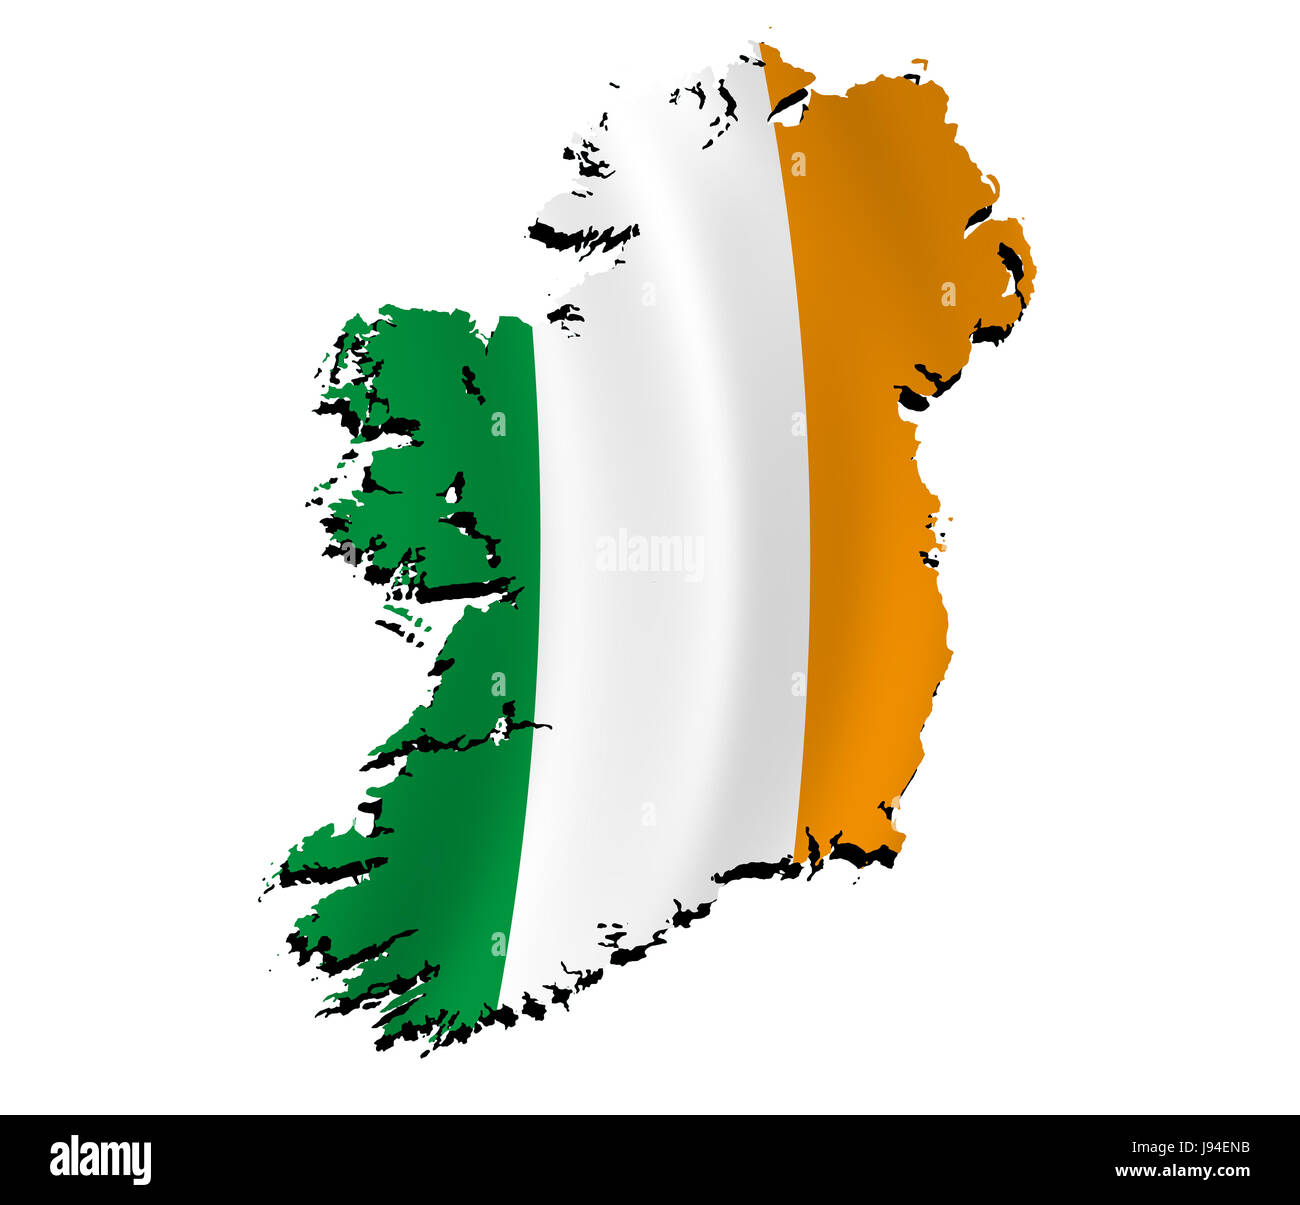 Flag border outline ireland atlas map of the world map flag border outline ireland atlas map of the world map detail isolated gumiabroncs Gallery